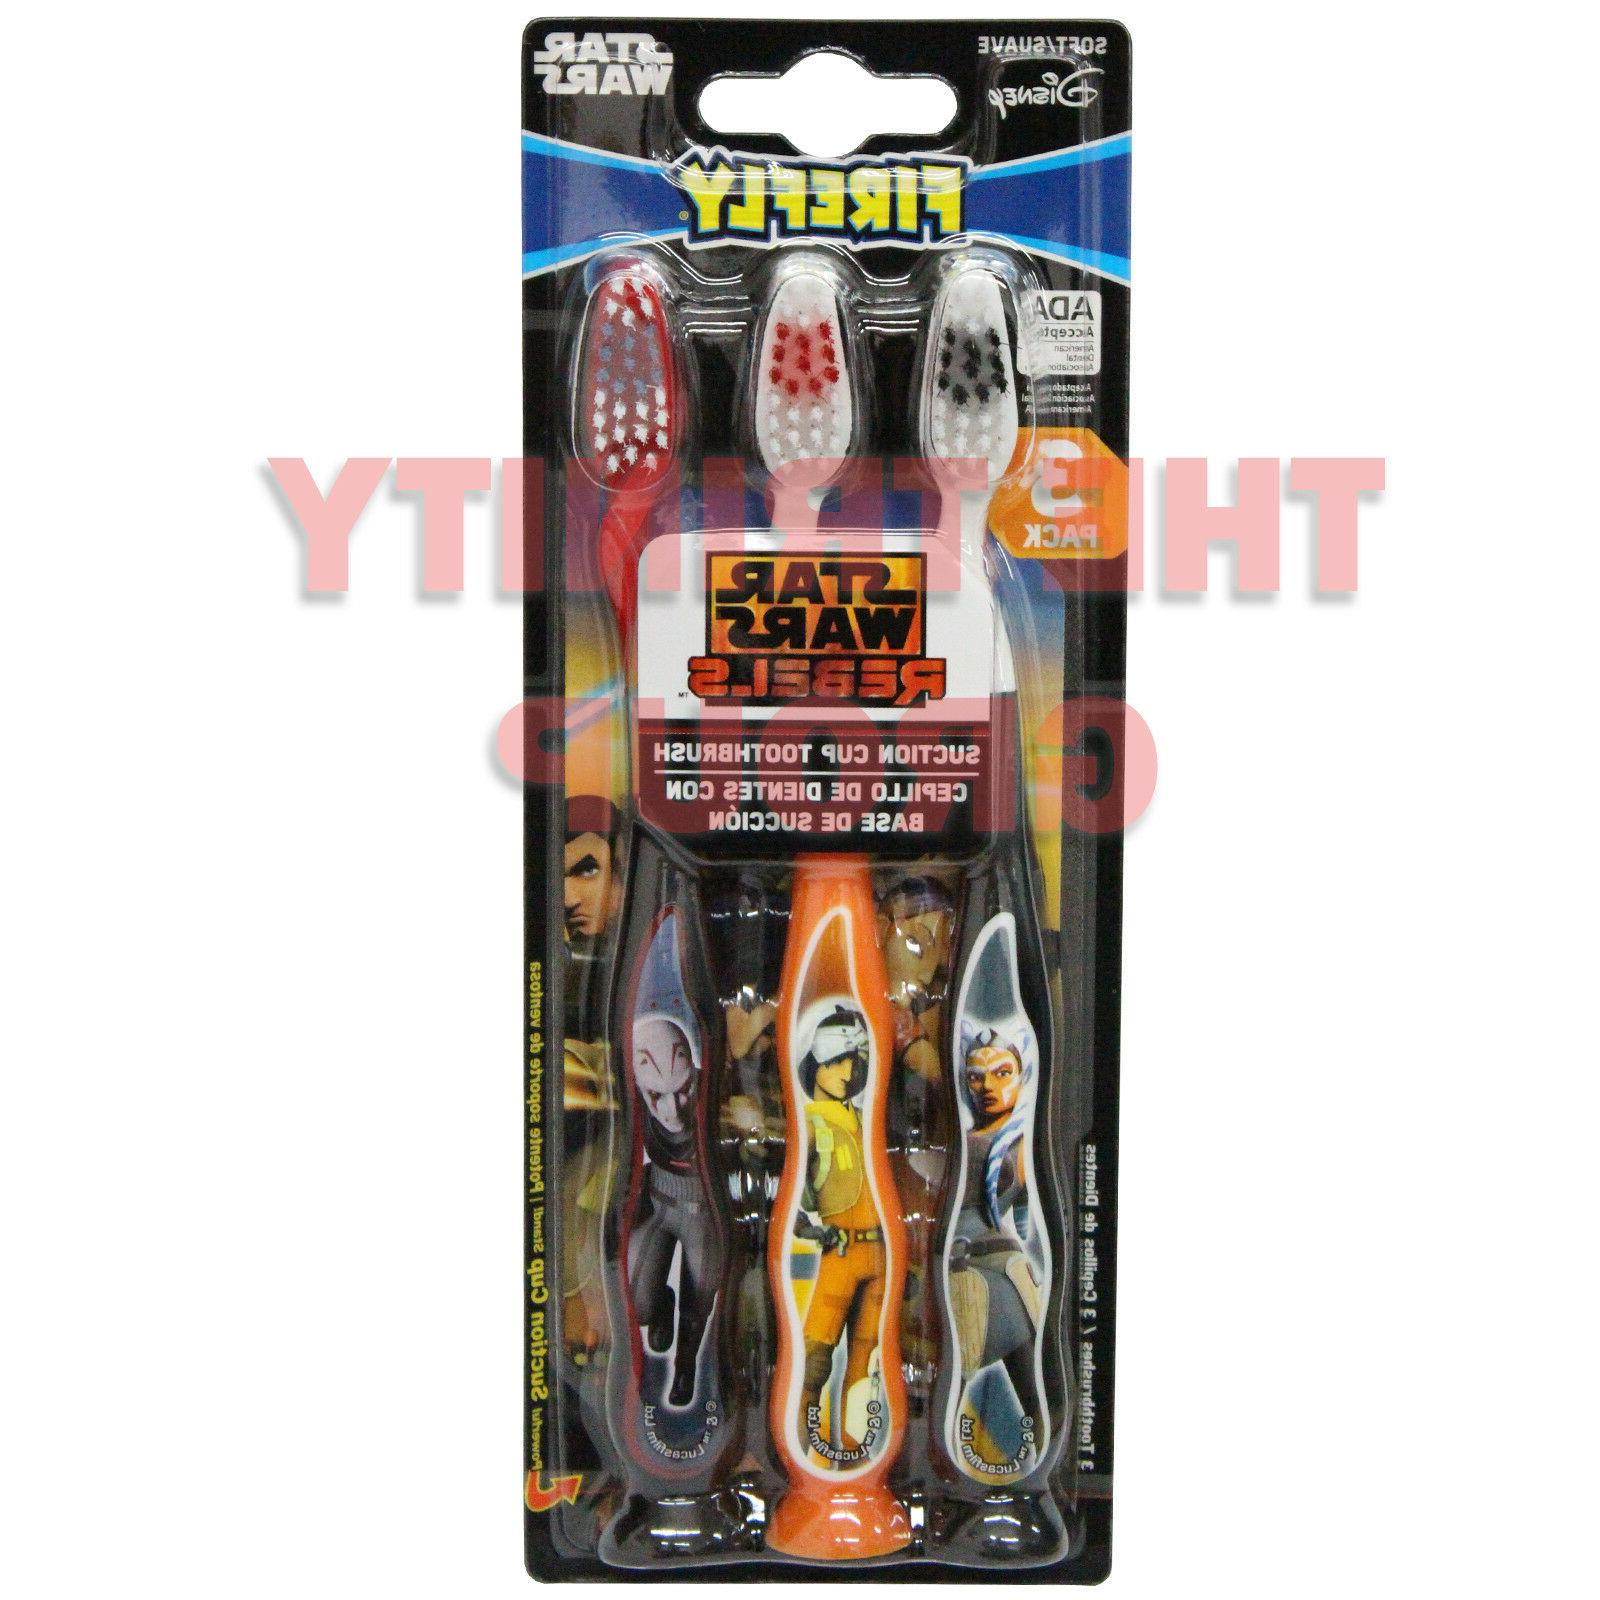 STAR WARS 3 PACK KIDS TOOTHBRUSH WITH SUCTION CUP BOTTOM